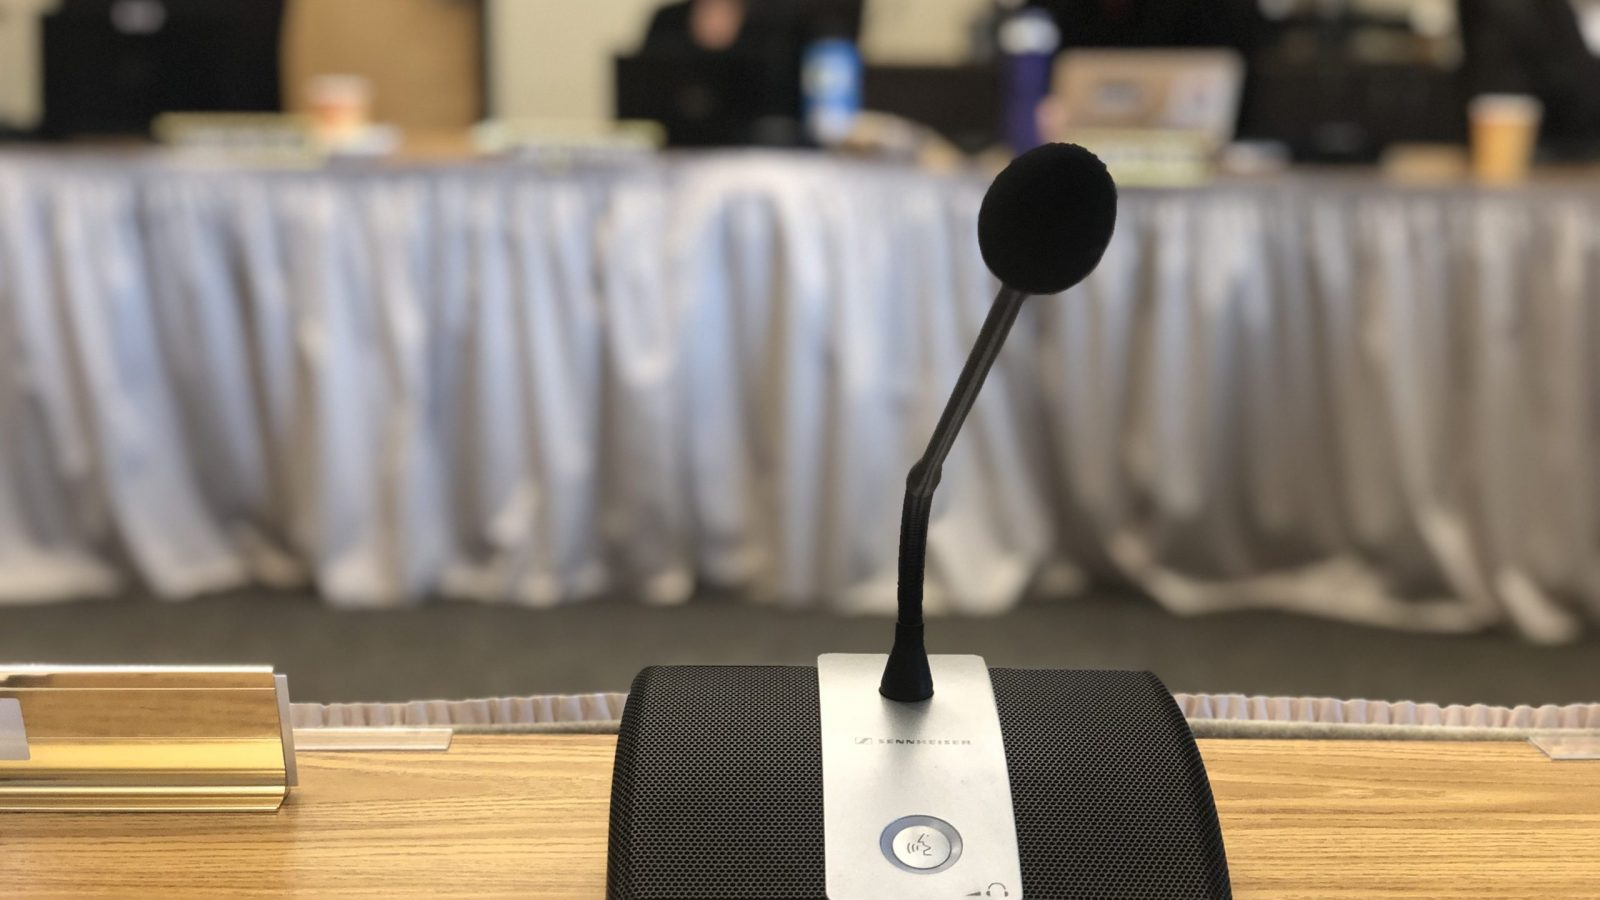 microphone on a table, people sitting in background